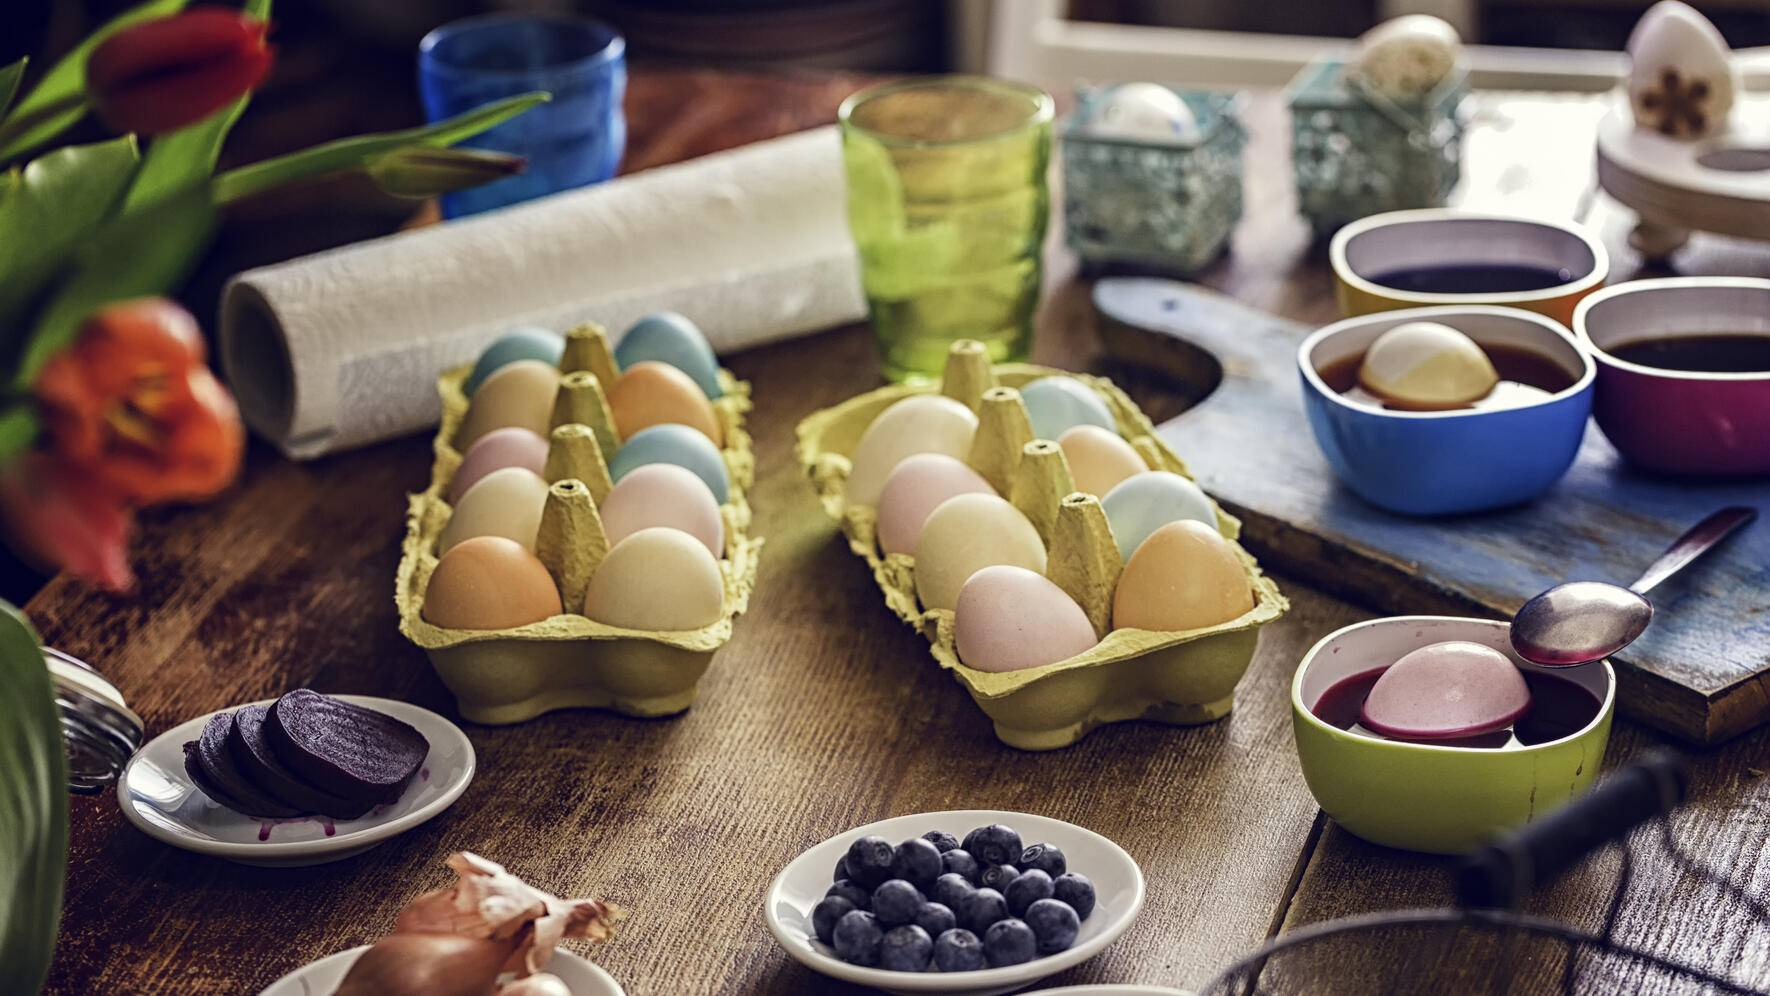 Naturally dyed Easter eggs with saffron, parsley, red cabbage, onion, red wine, blueberry, coffee, beet, carrot tumeric and spinach